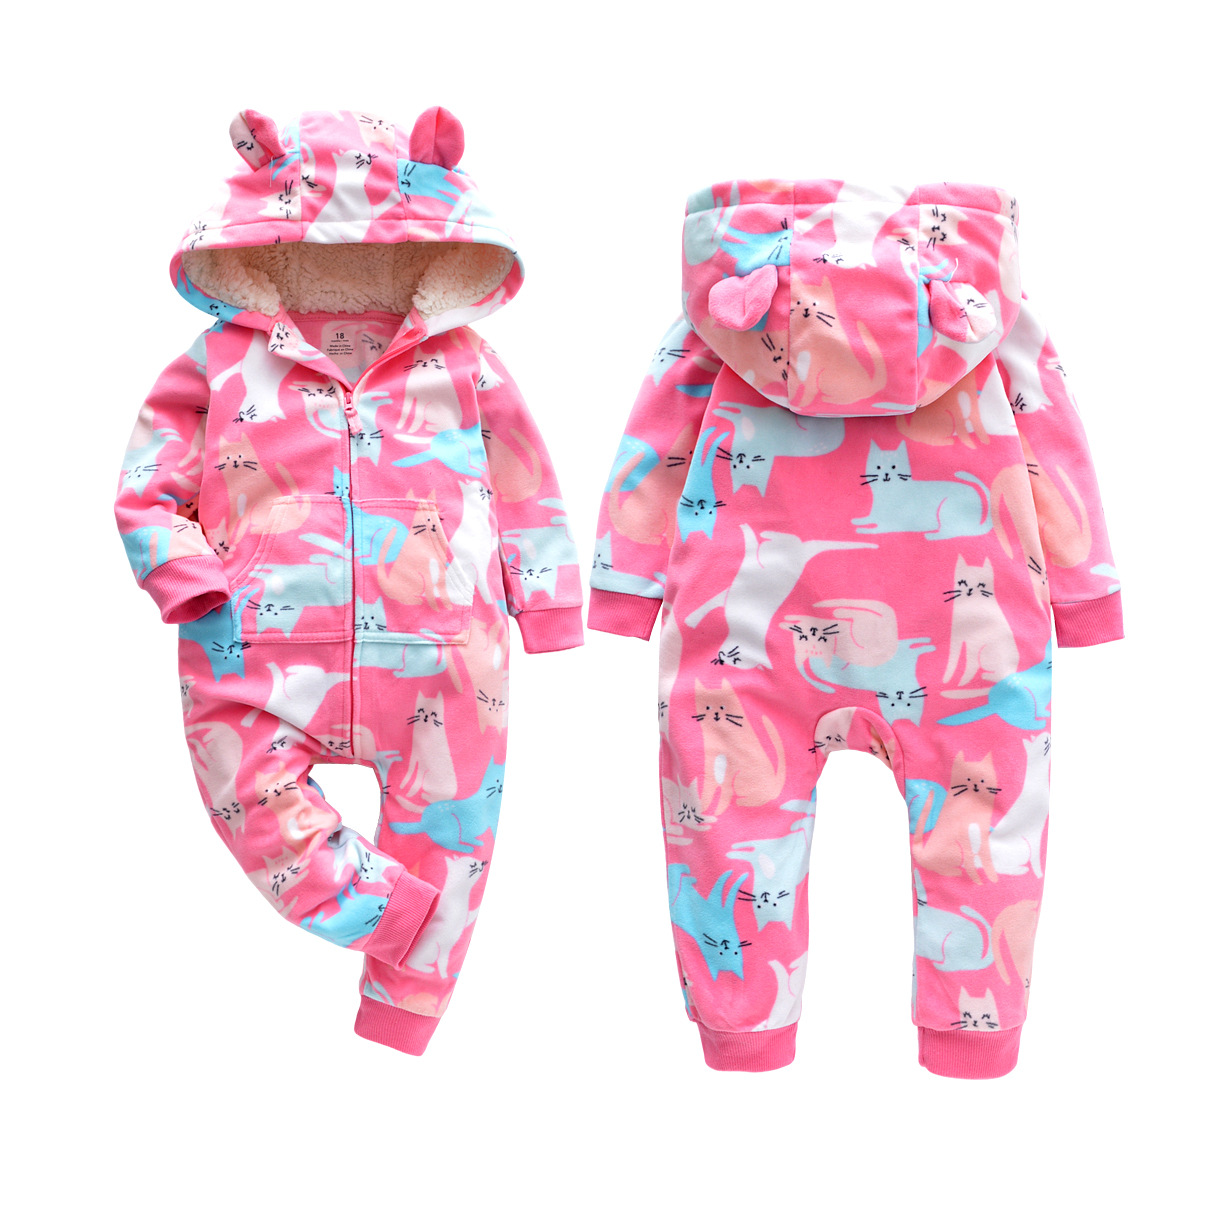 Baby clothes fleece zipper up toddler girl clothes winter jumpsuit infants toddler   romper   hood baby girl stuff spring boy outfit